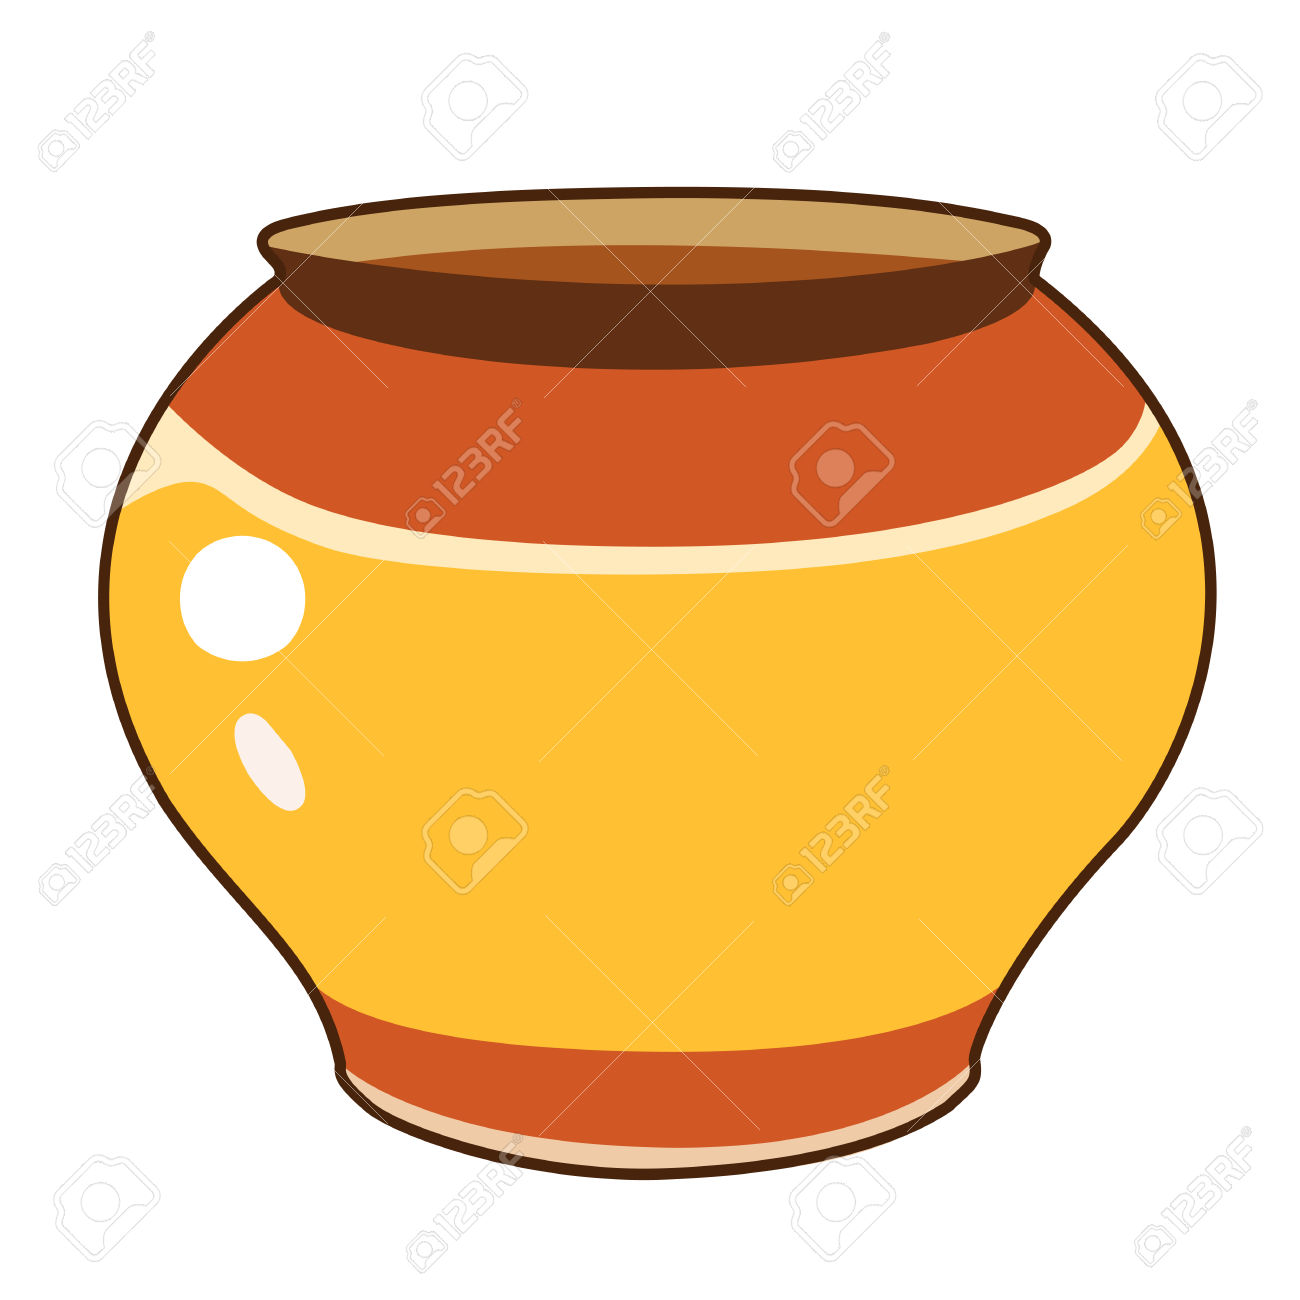 Terracotta pot clipart.